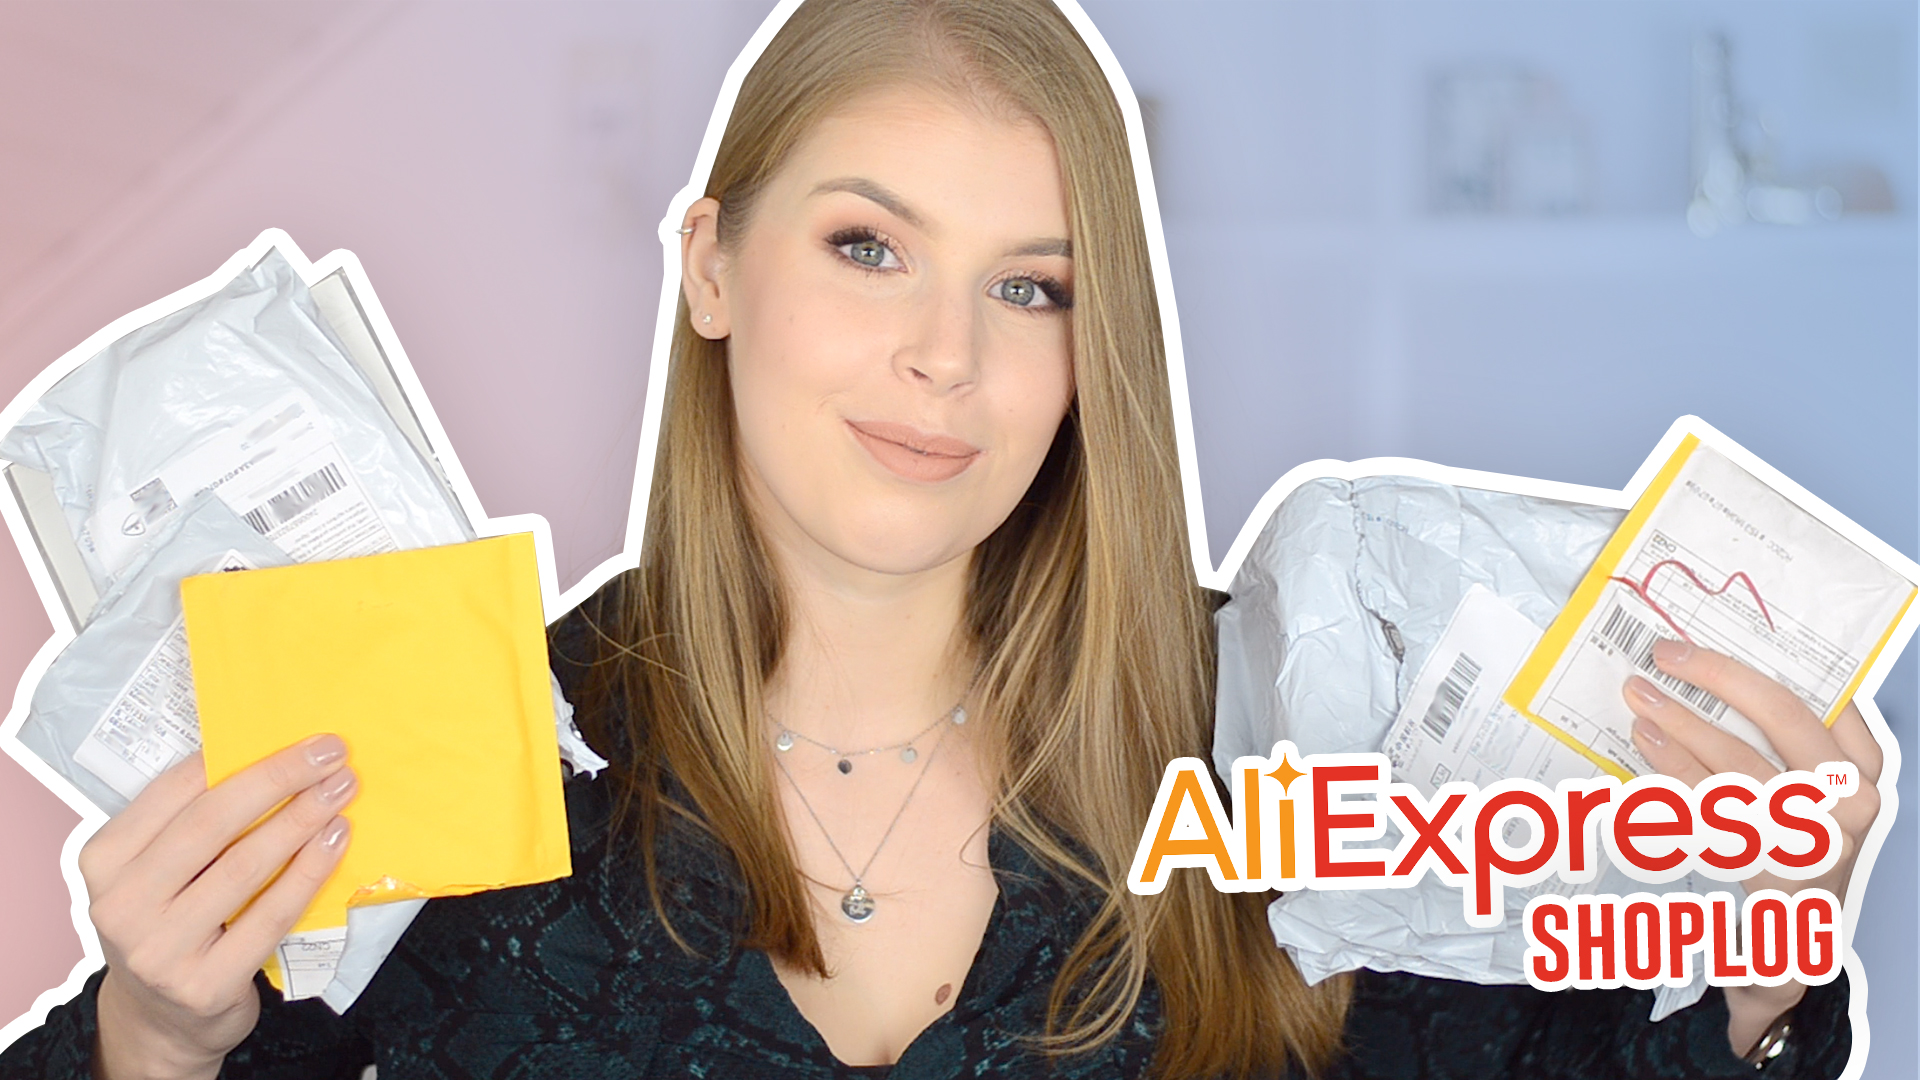 Aliexpress Shoplog Januari 2019